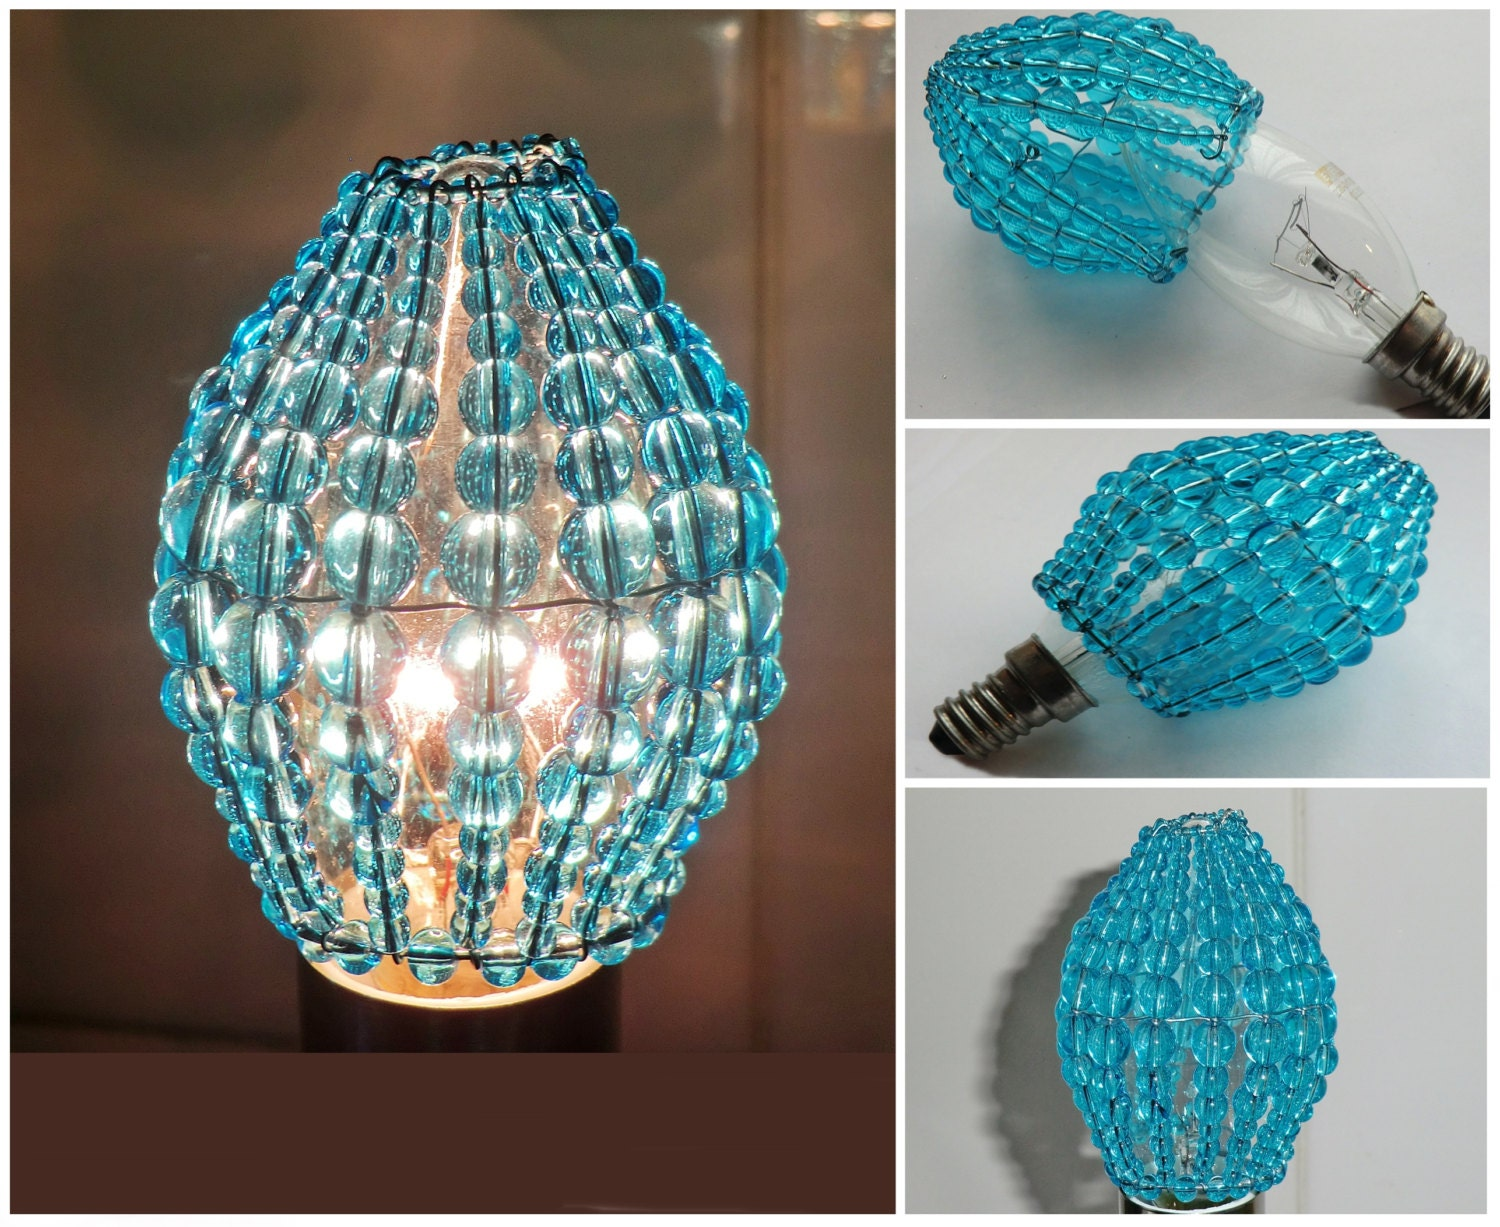 Crystal Chandelier Inspired Glass Beaded Lightbulb Candle Bulb Cover  Turquoise Pendant Lamp Teal Aqua Lamp Shade